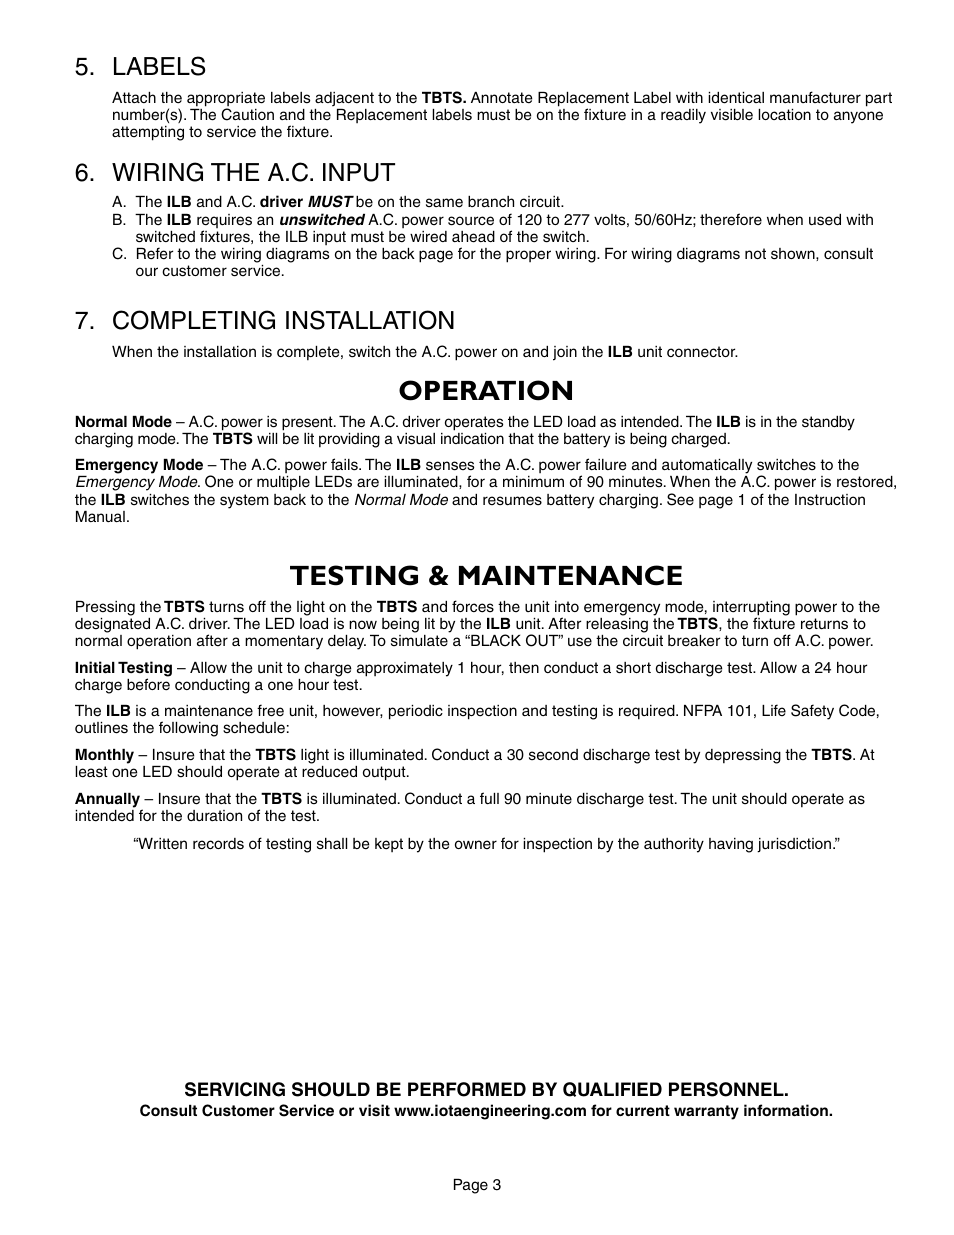 Operation Testing Maintenance Labels Iota Ilb Cp12 User Manual Wiring Number Page 3 5